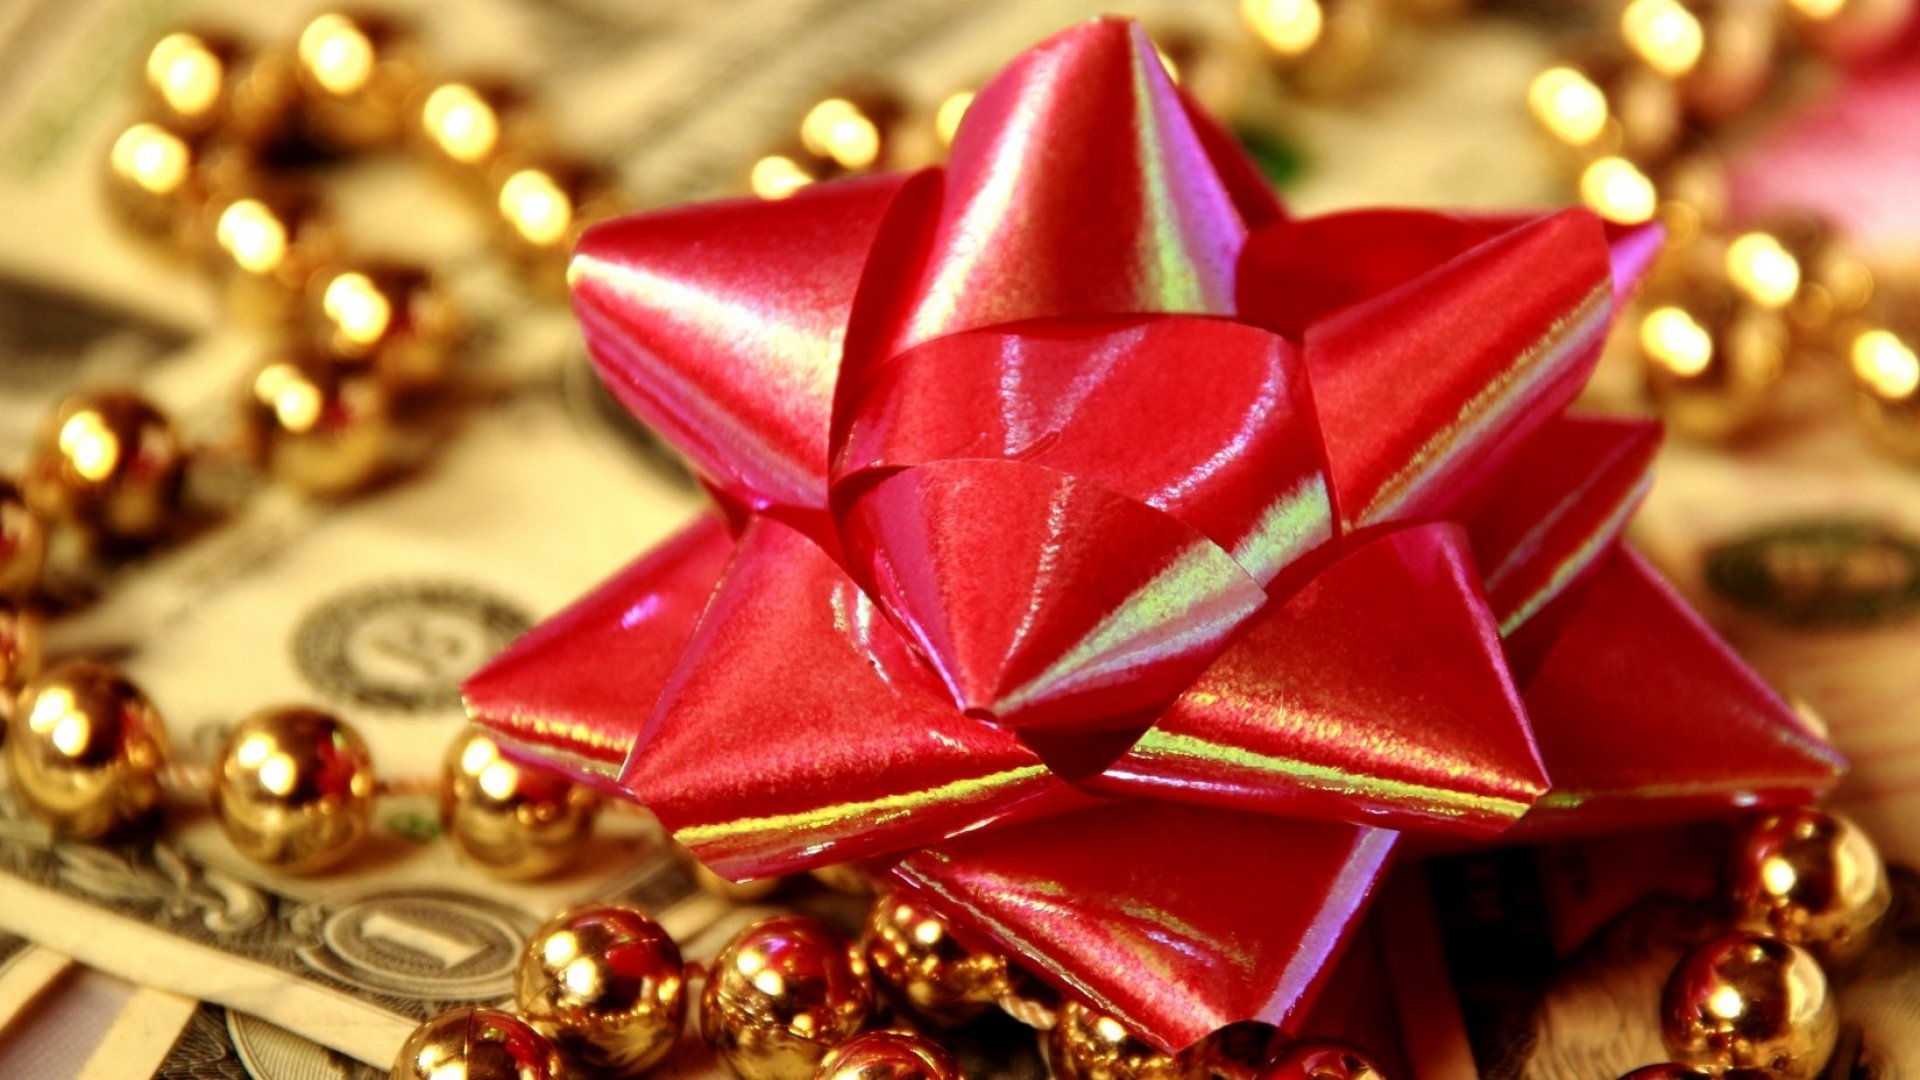 7 Tips to Throw an Awesome Holiday Party on a Budget